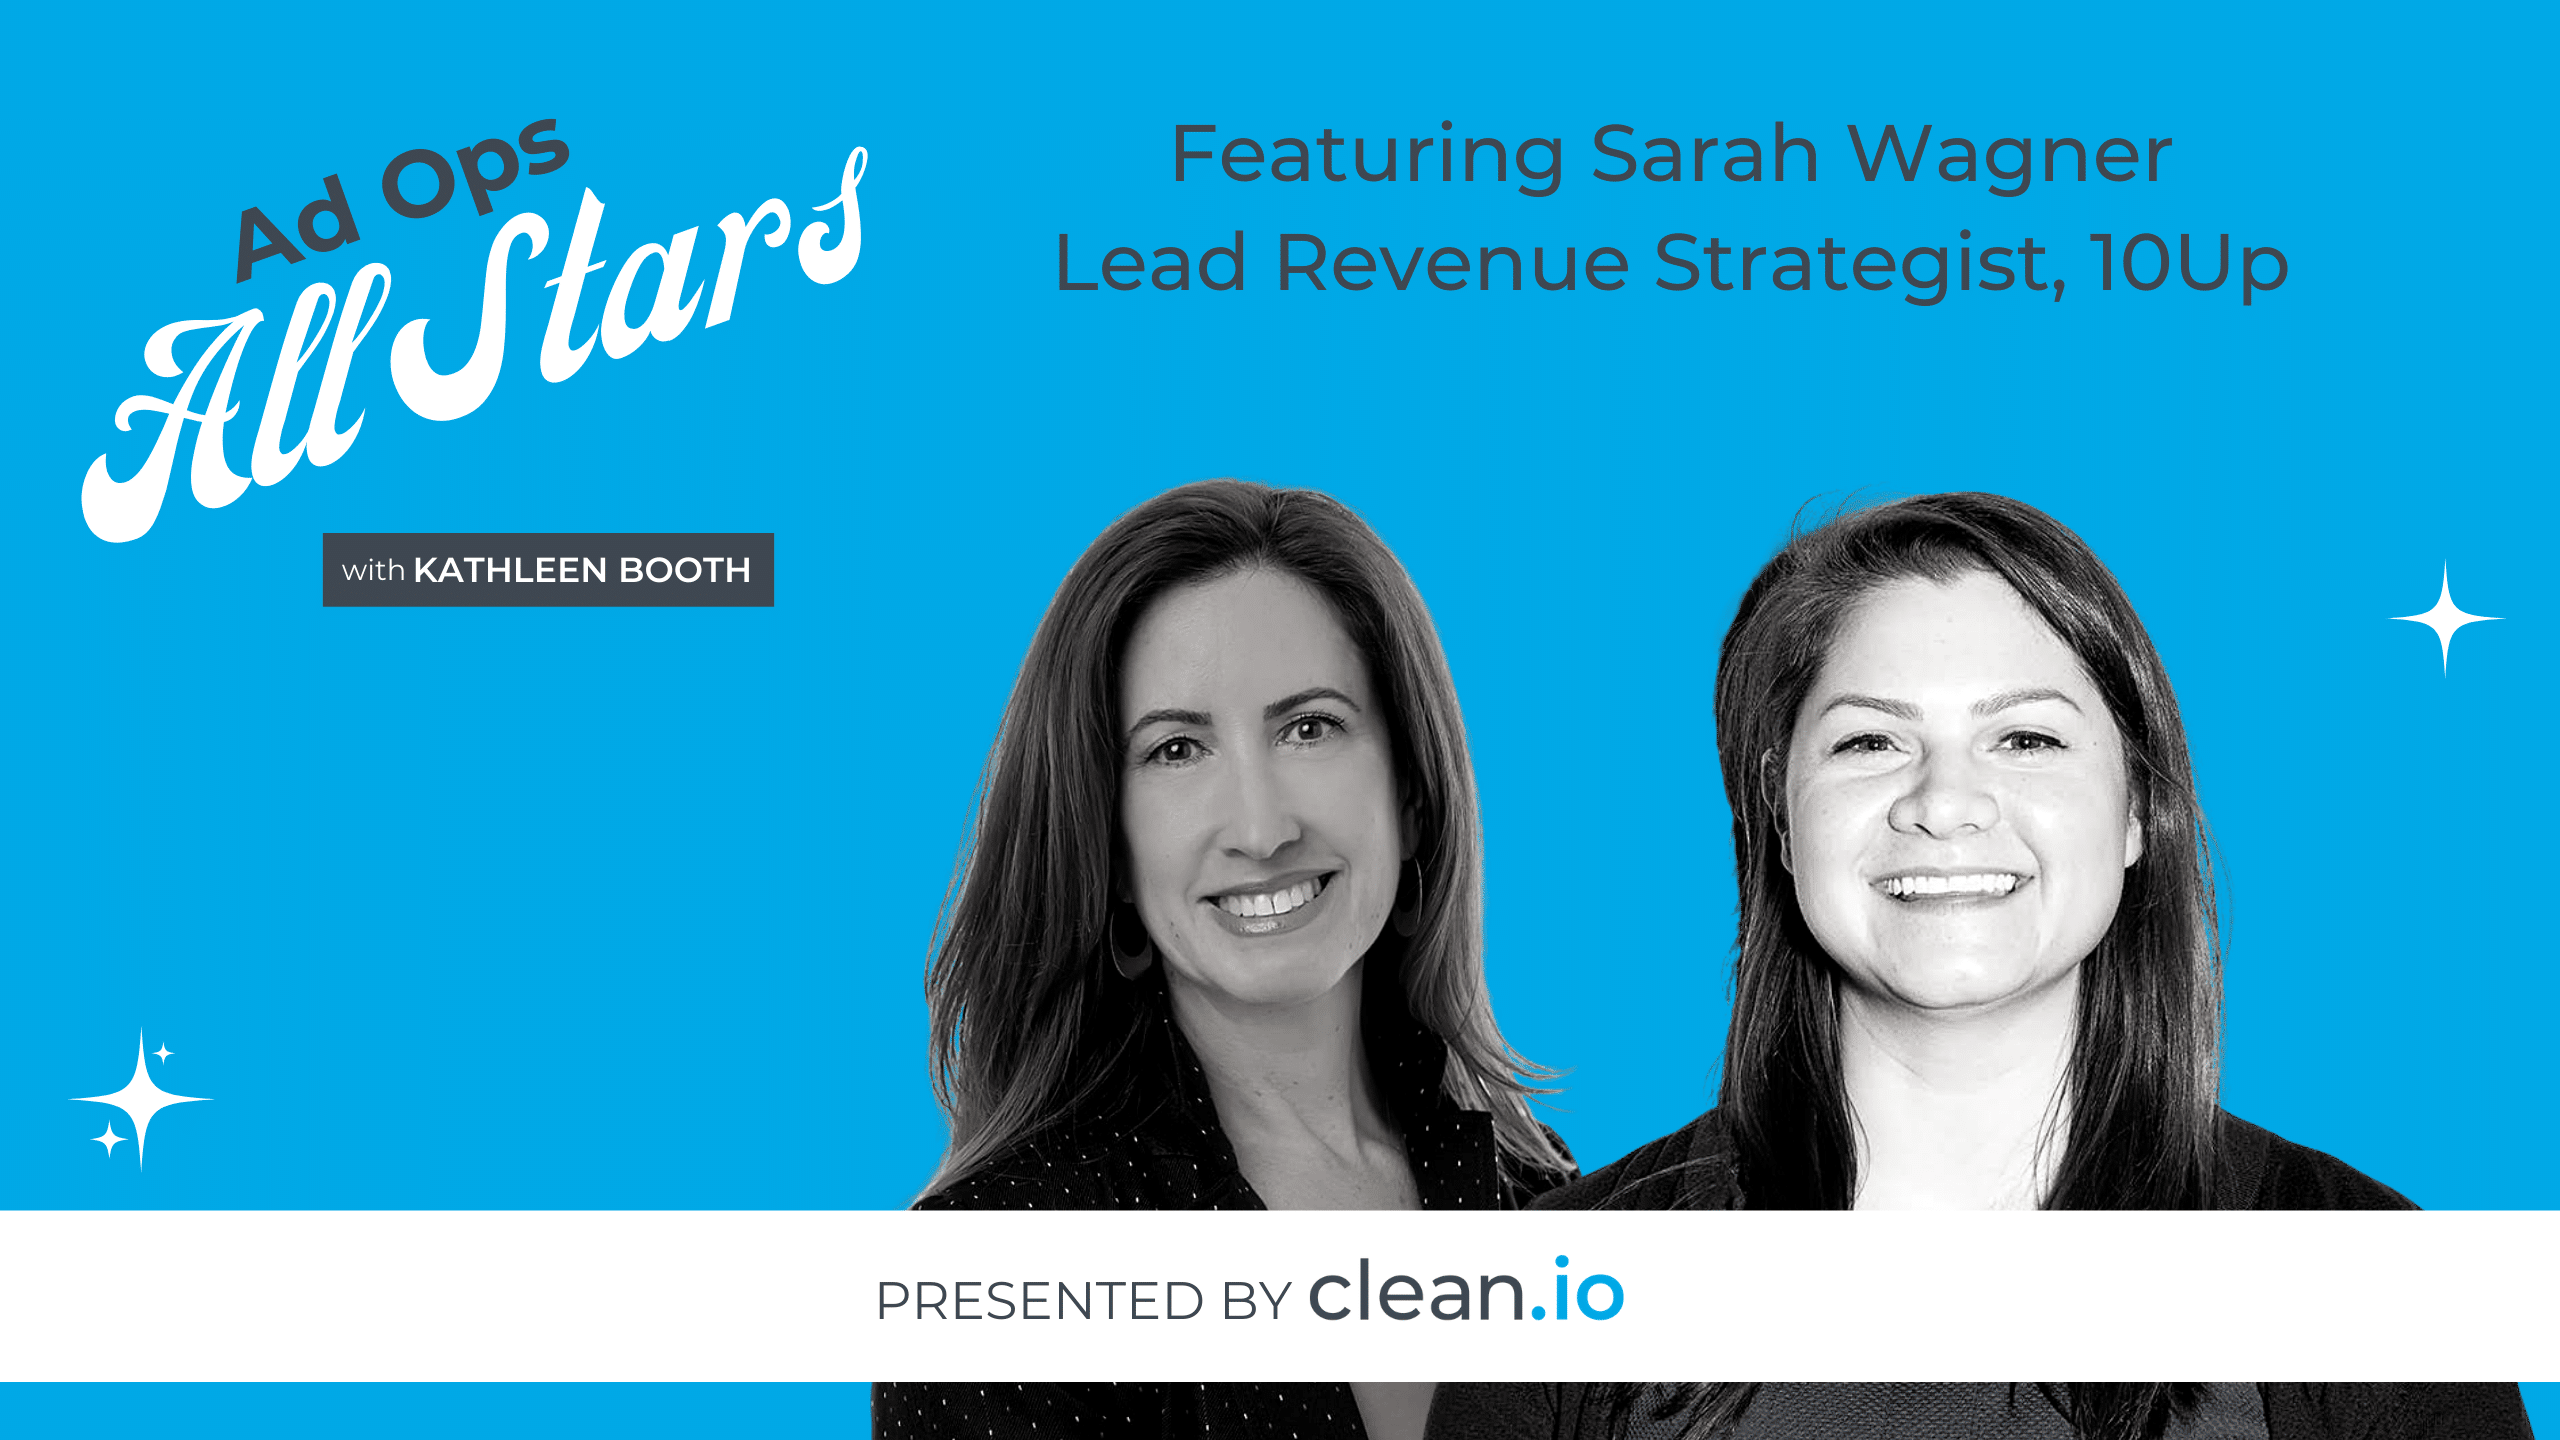 Ad Ops All Stars: Sarah Wagner, 10Up